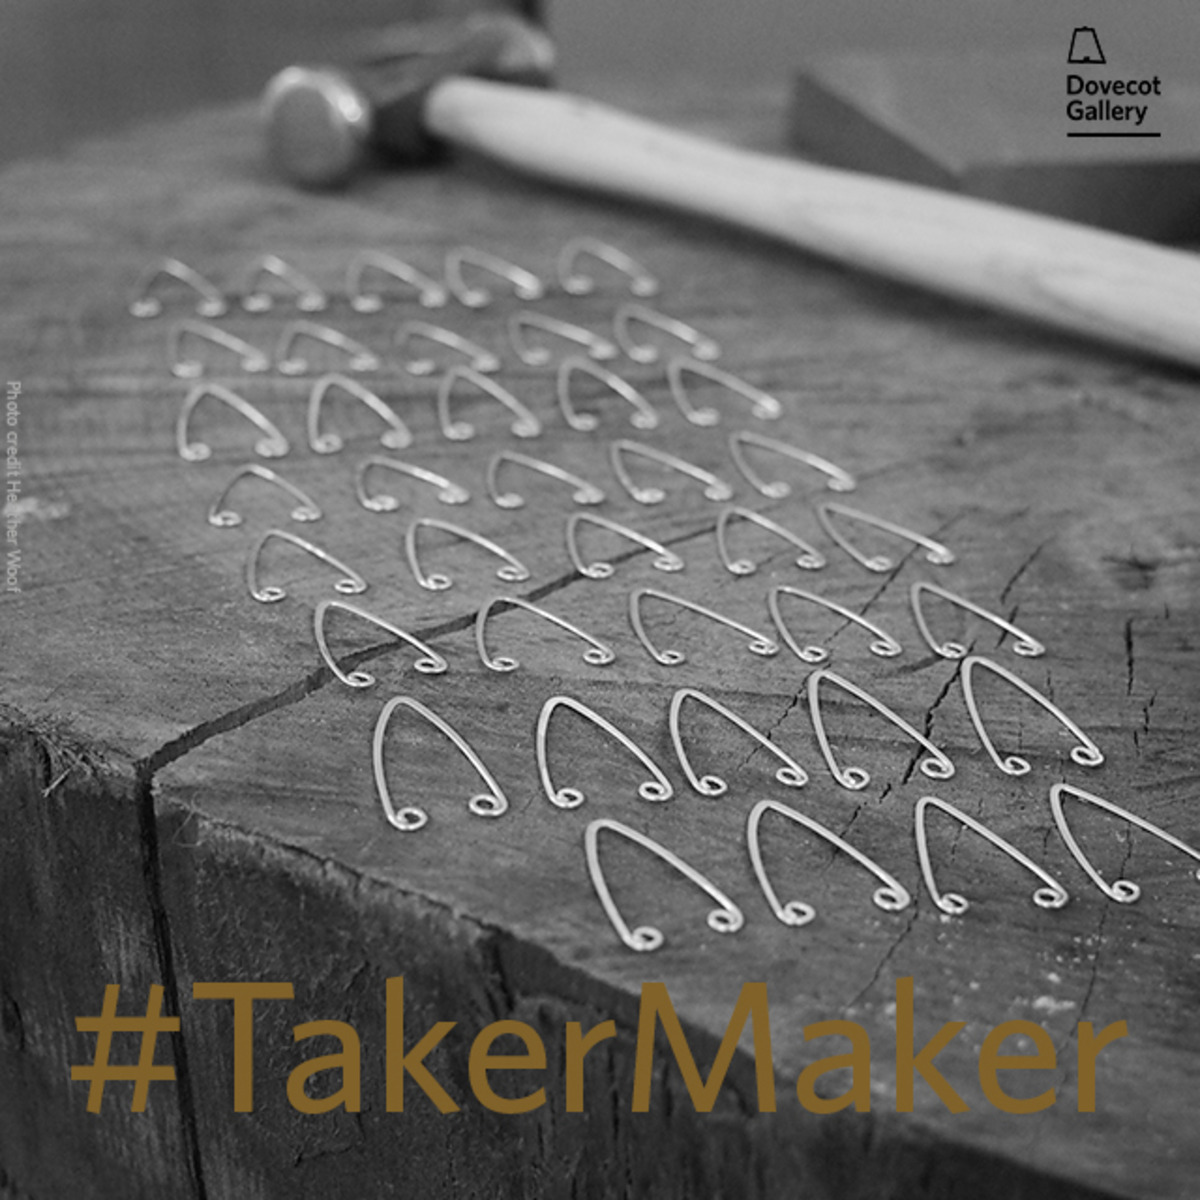 Selected 2015: Heather Woof #TakerMaker Q&A and Handling Session